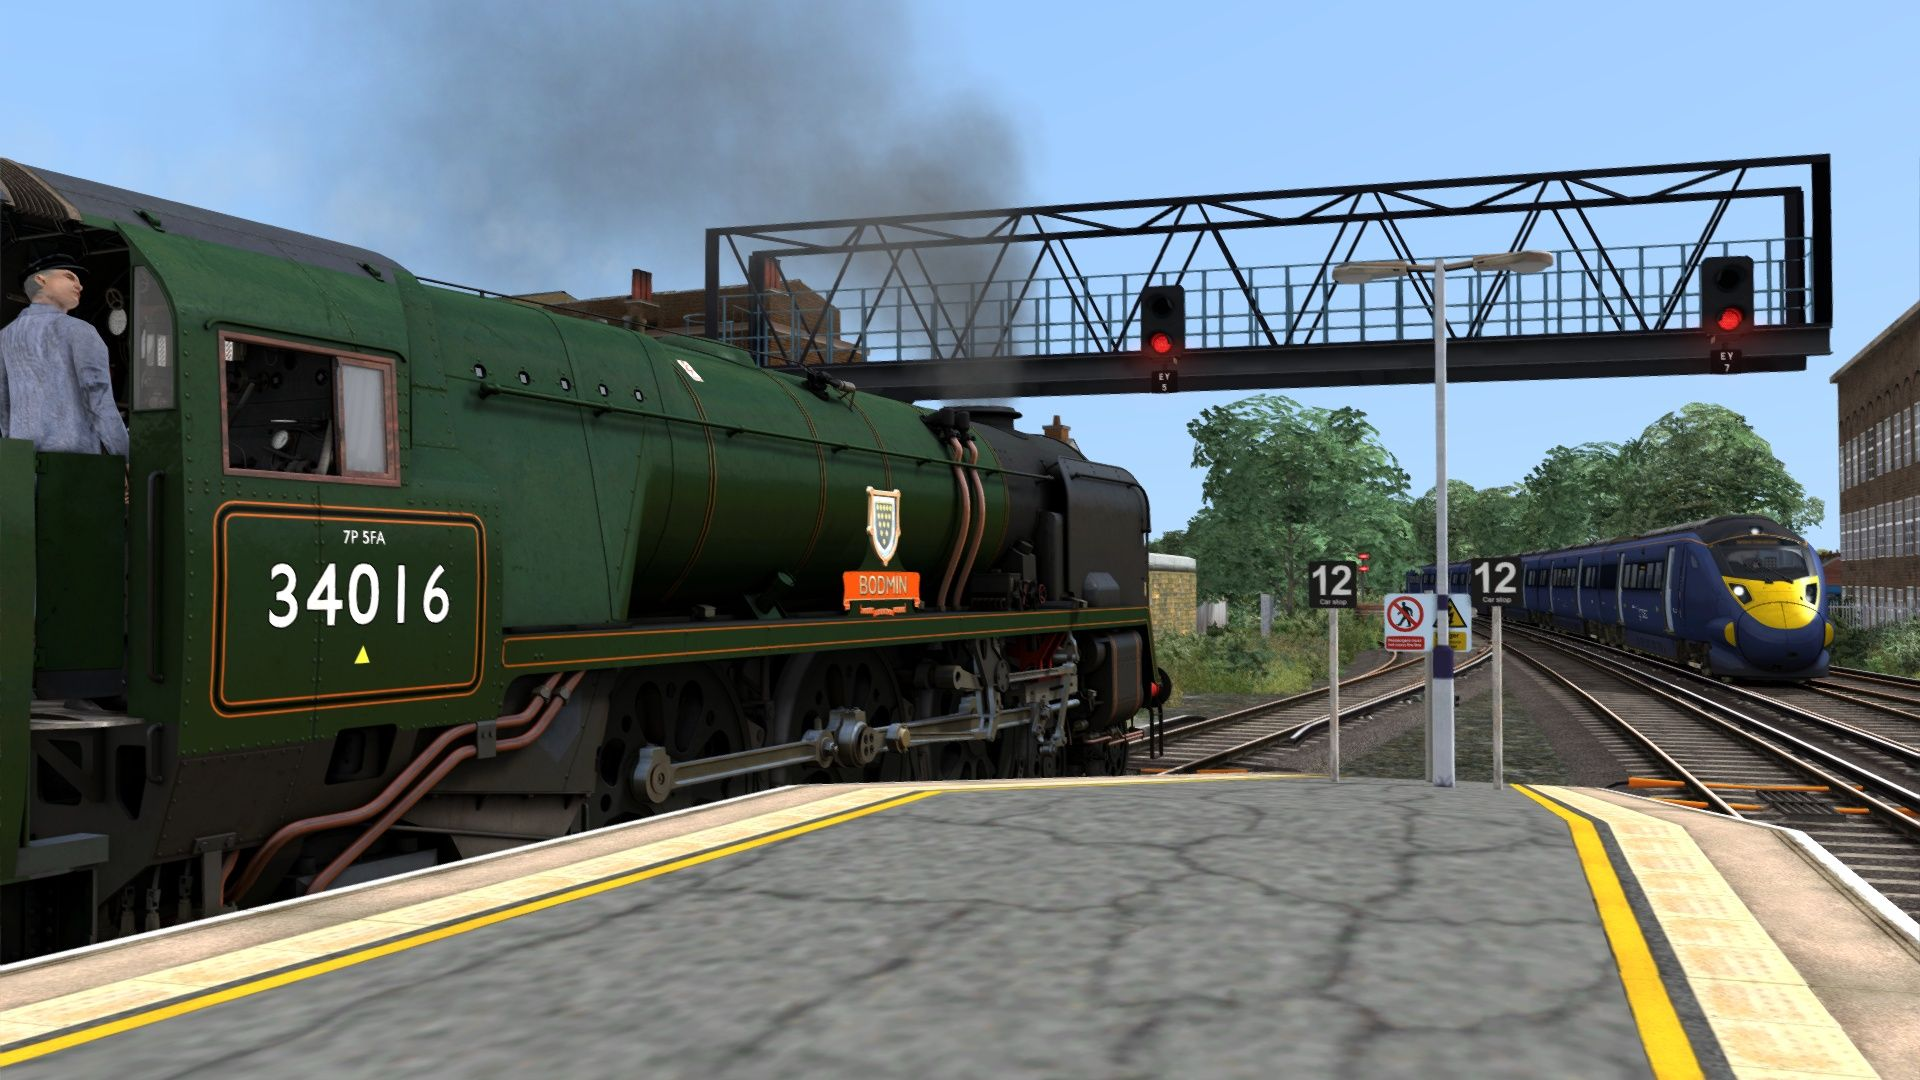 Screenshot_London Faversham High Speed_51.31170-0.89025_13-33-40